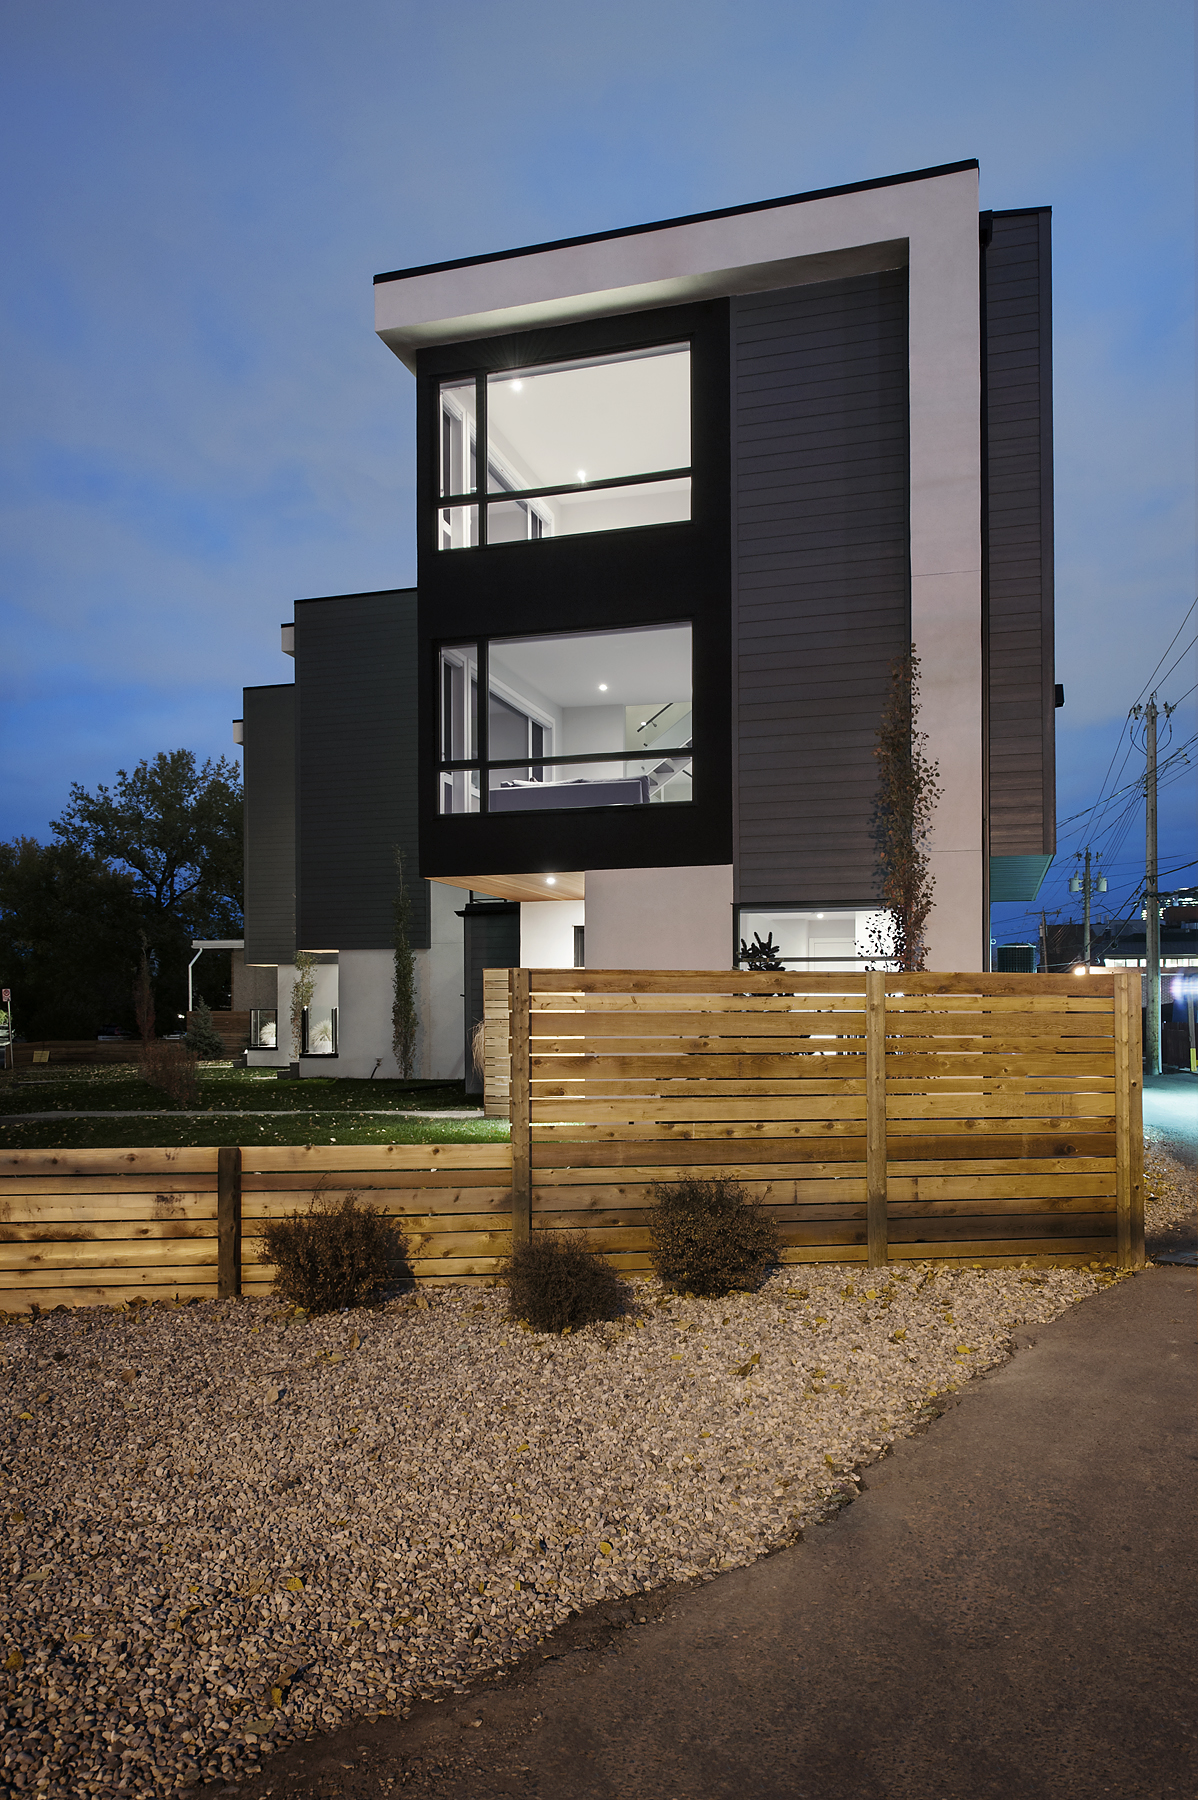 Multifamily residential custom home by Alloy Homes Inc.